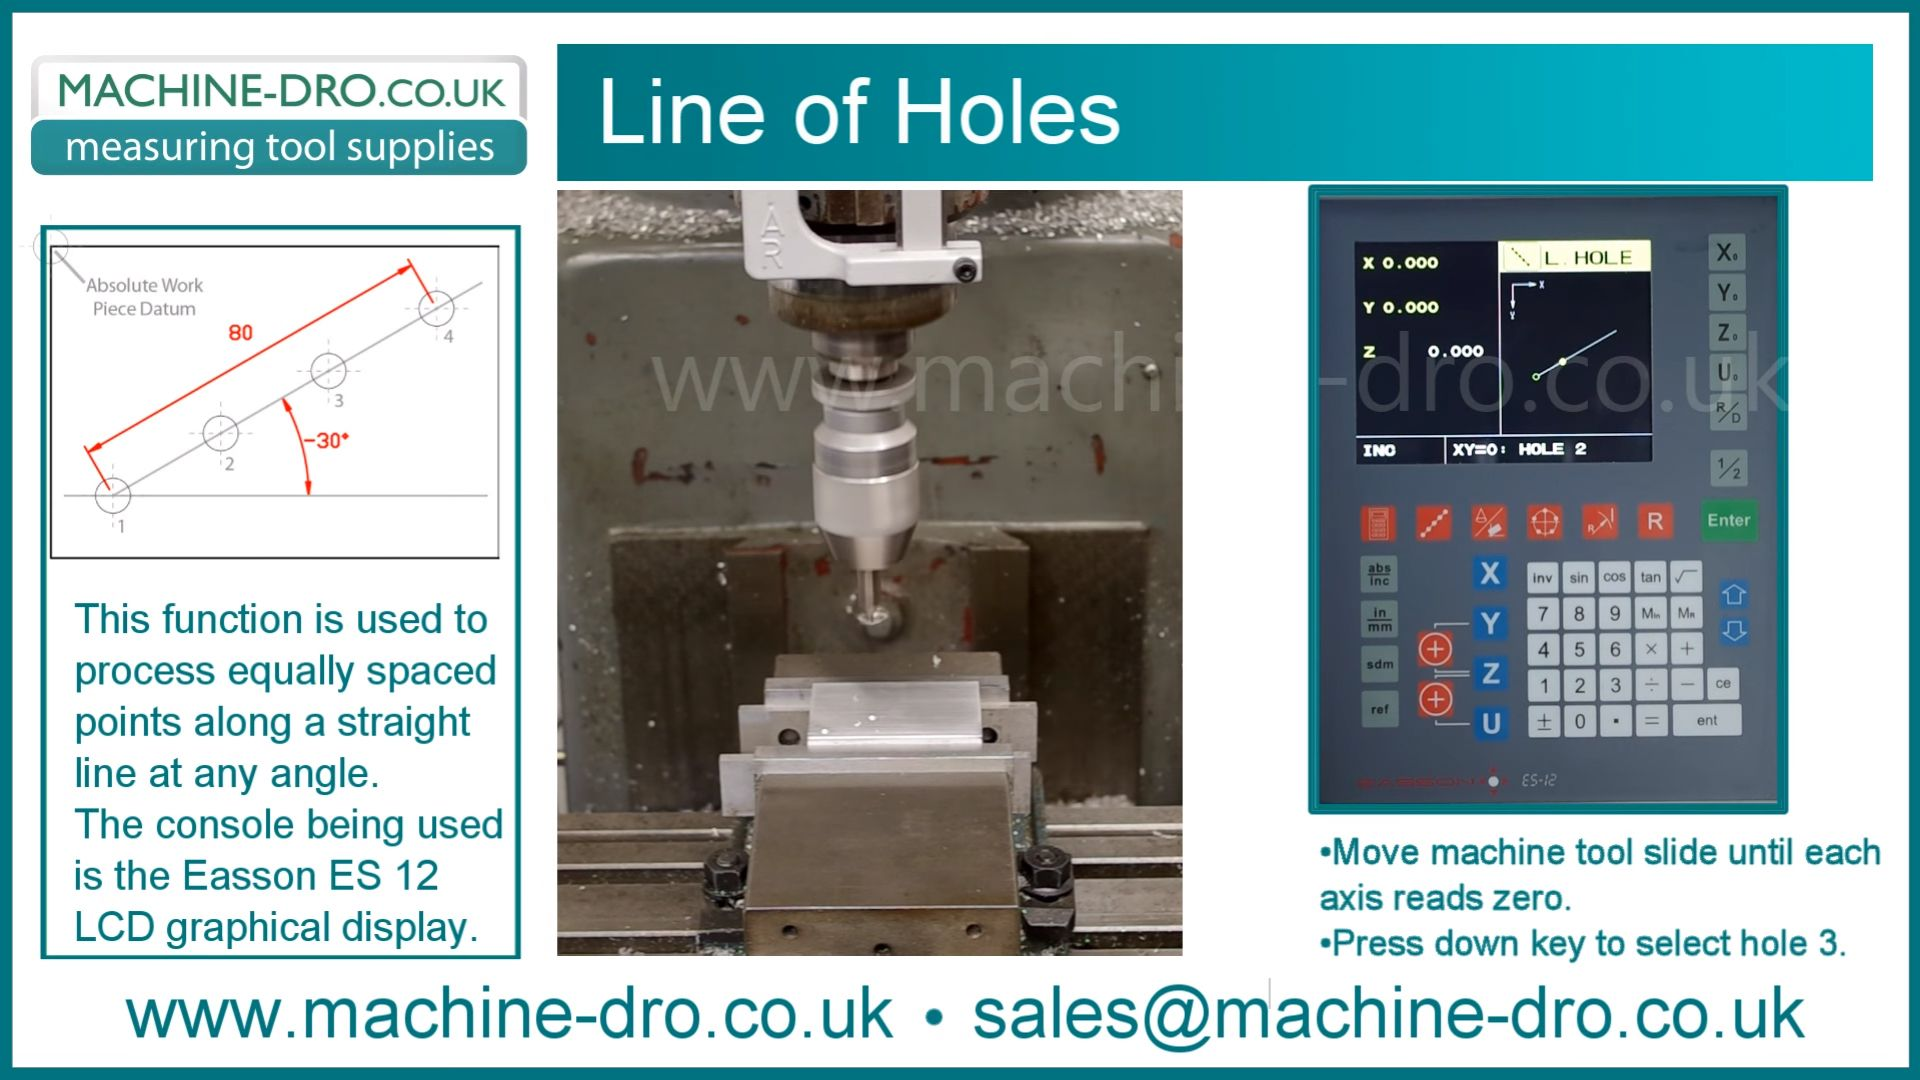 Line of Holes LCD